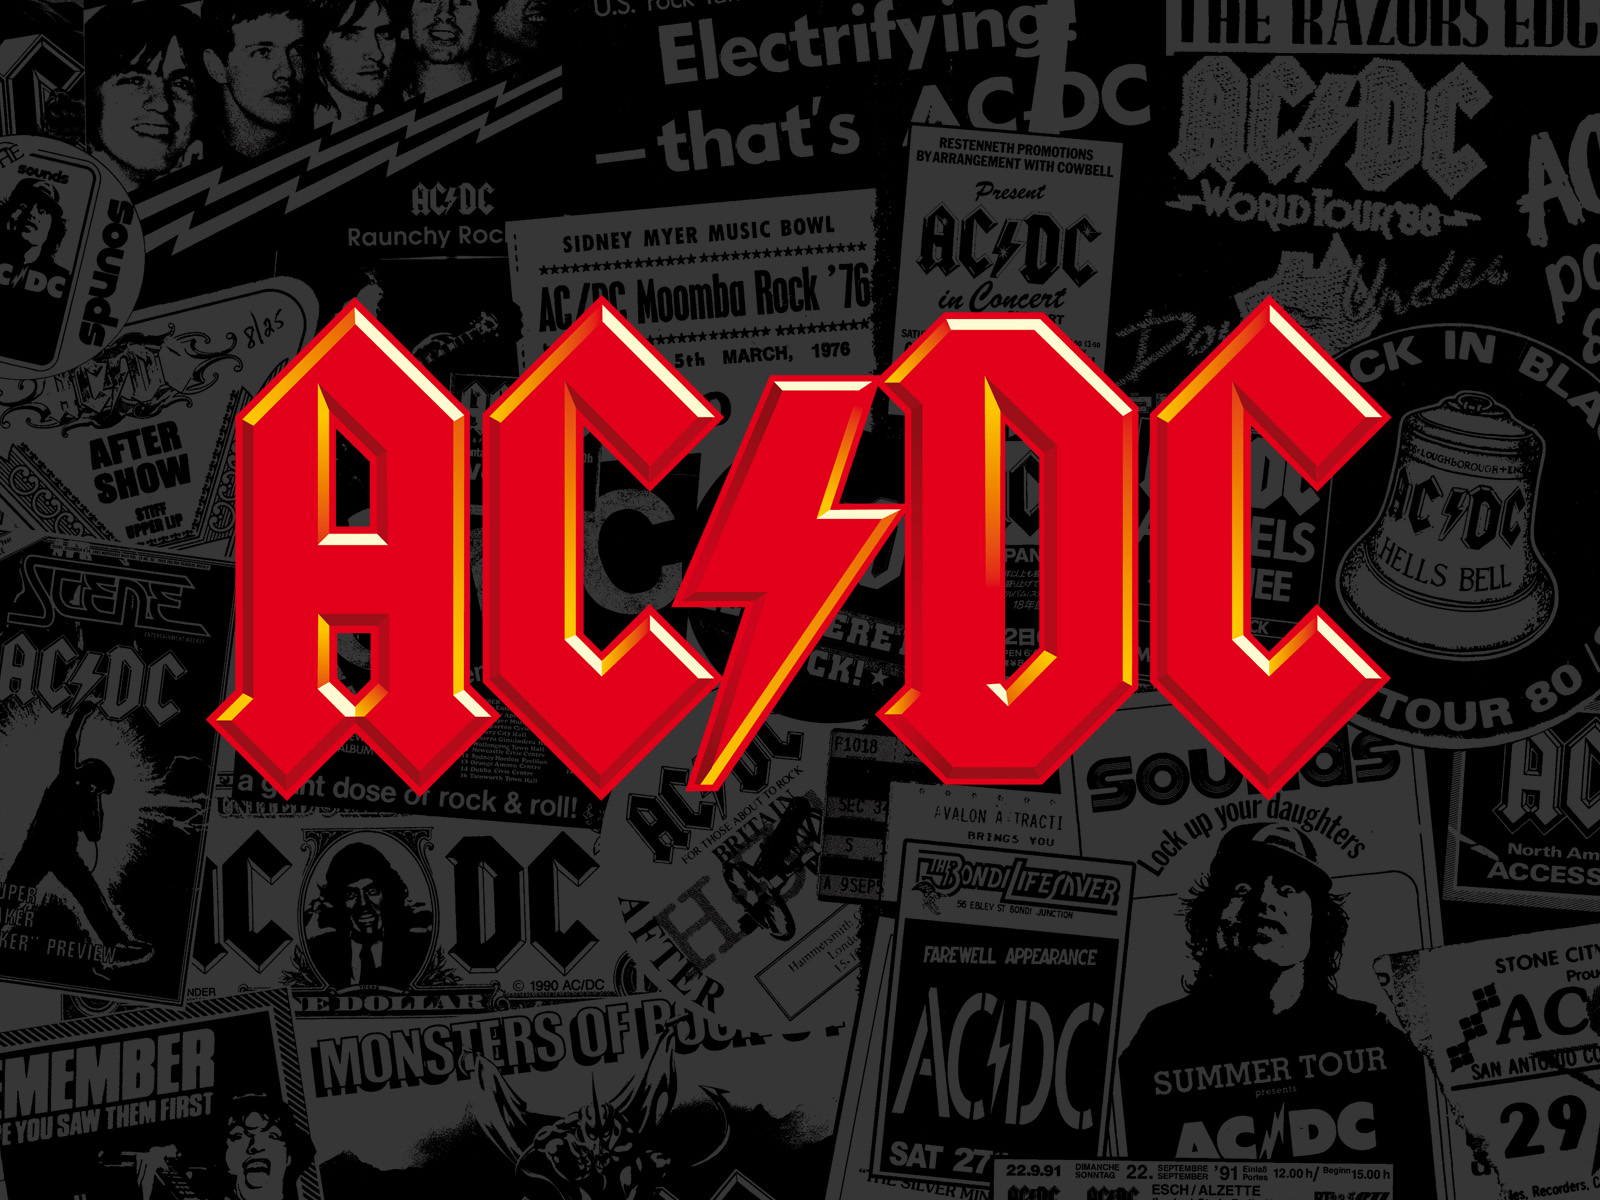 hd wallpapers  Ac Dc Wallpaper Download